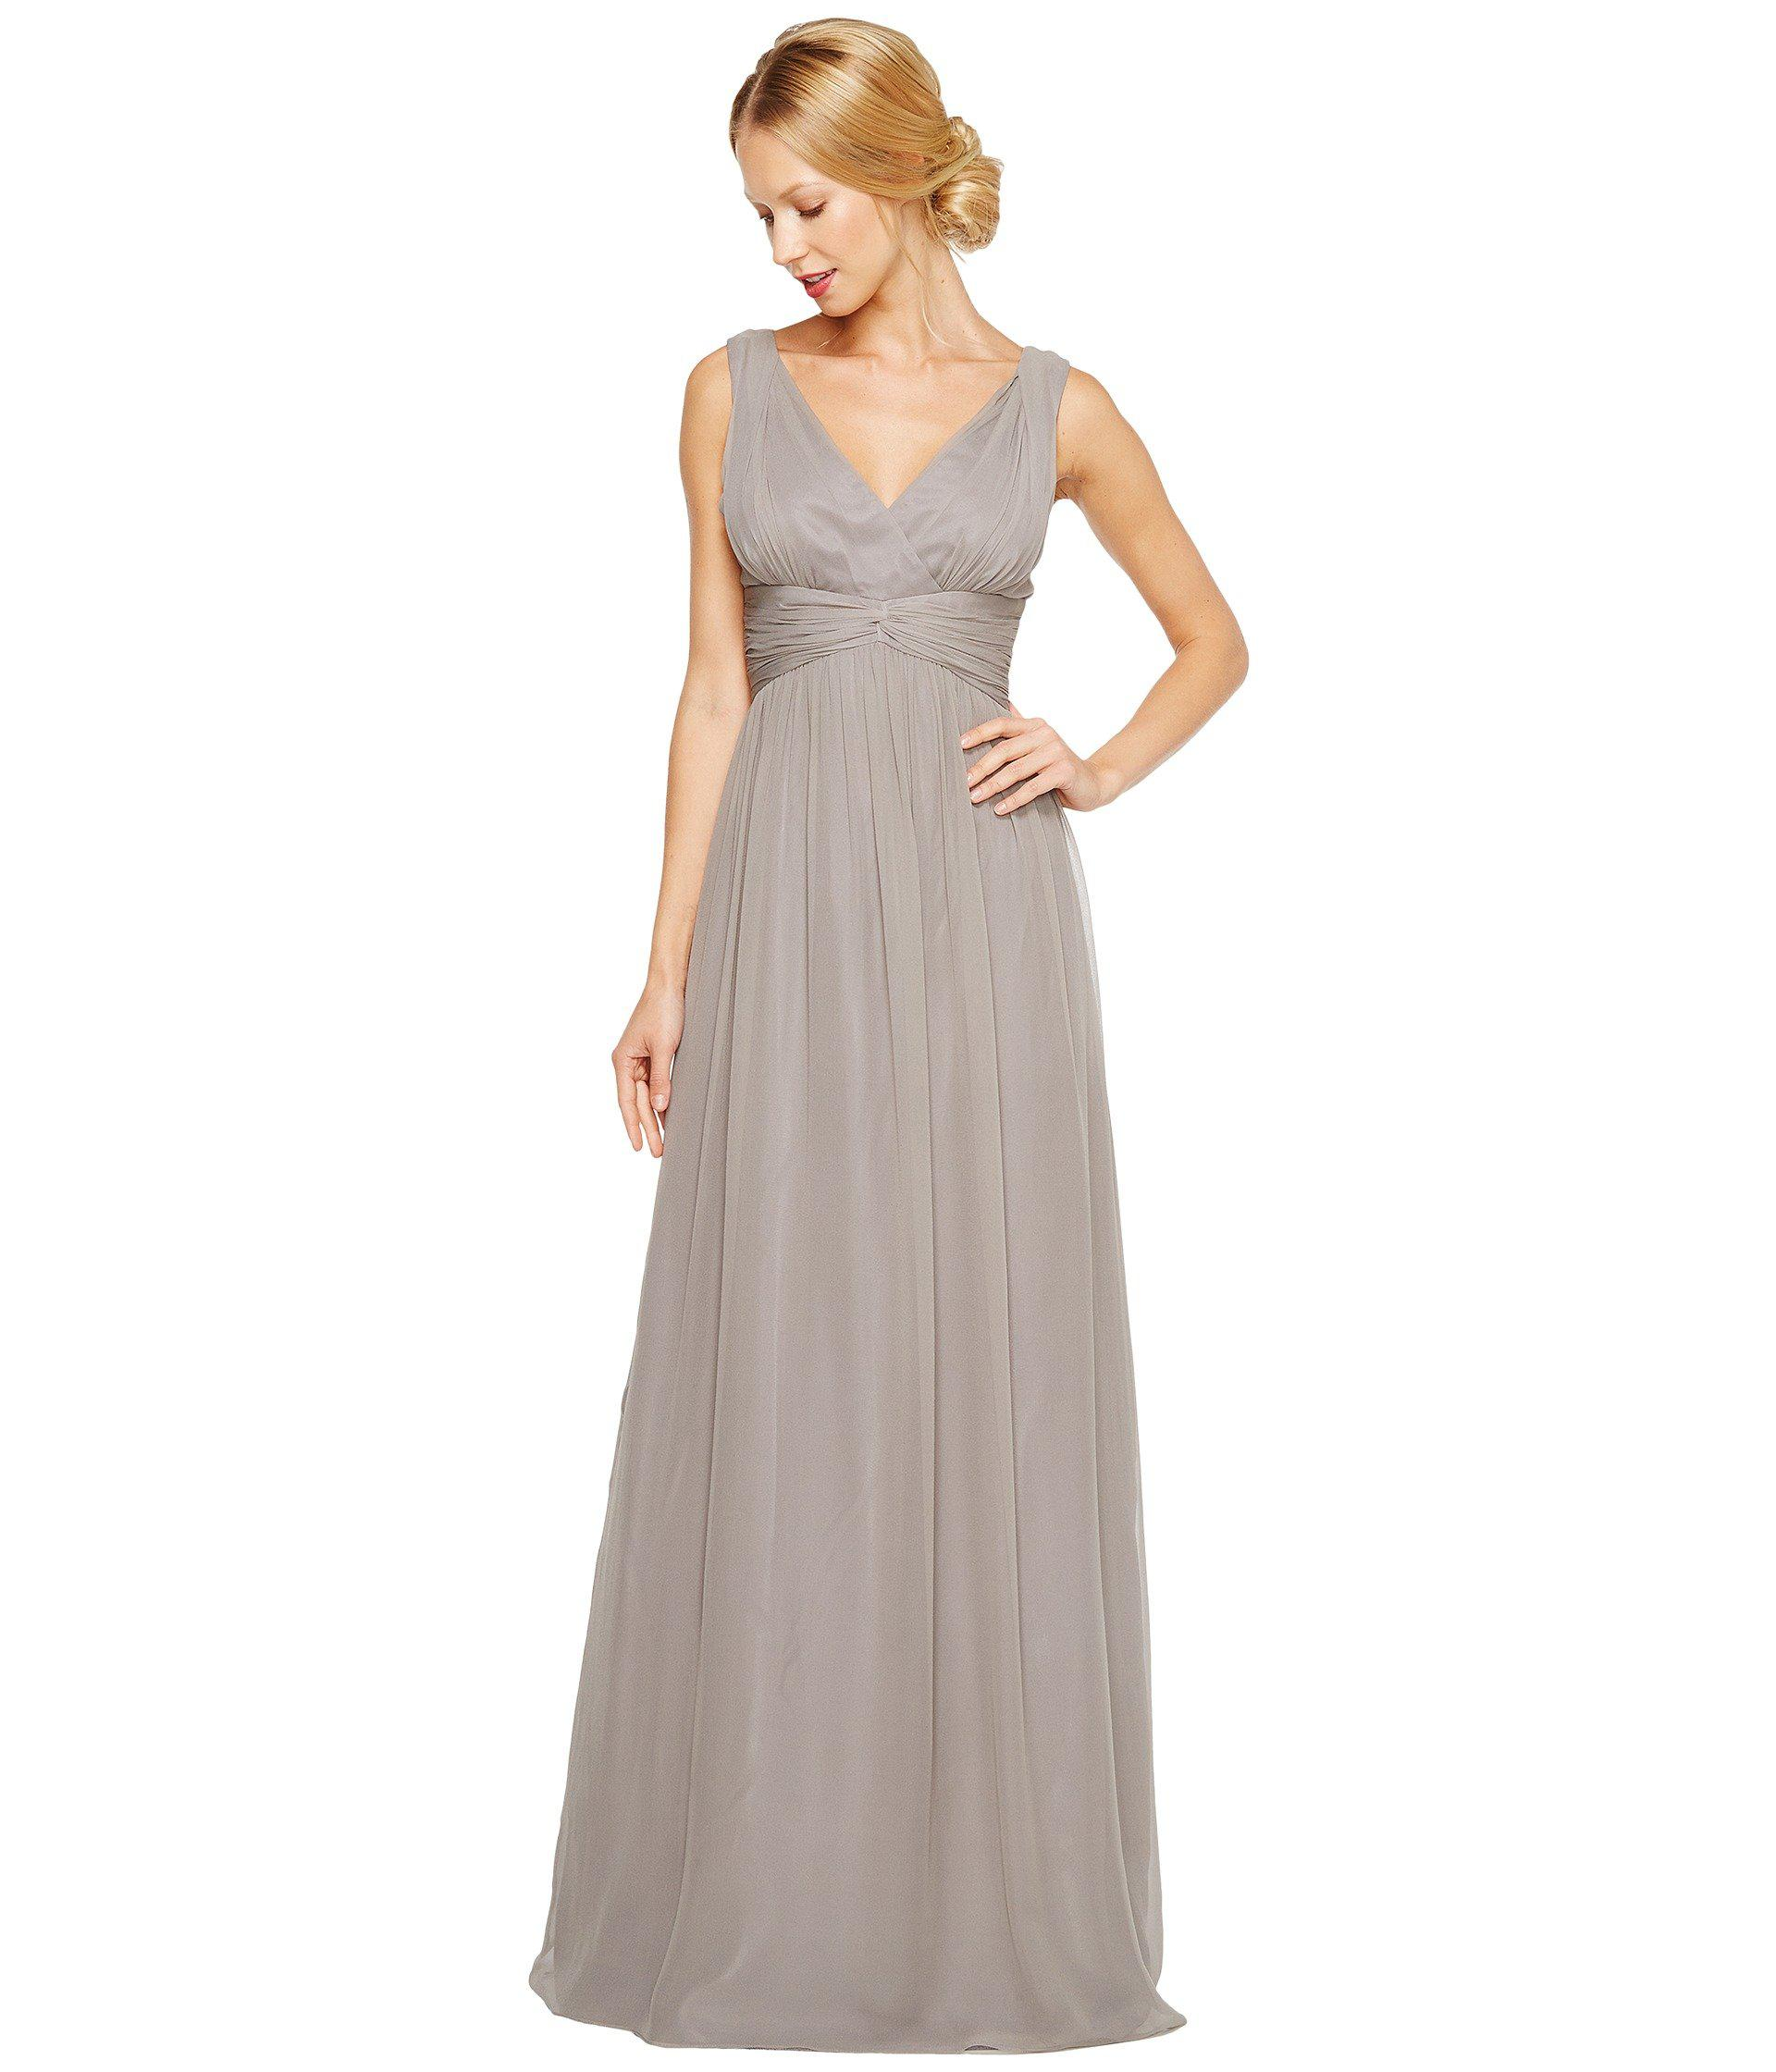 Lyst - Donna morgan Julie Bra Friendly Long Gown in Gray - Save 55%